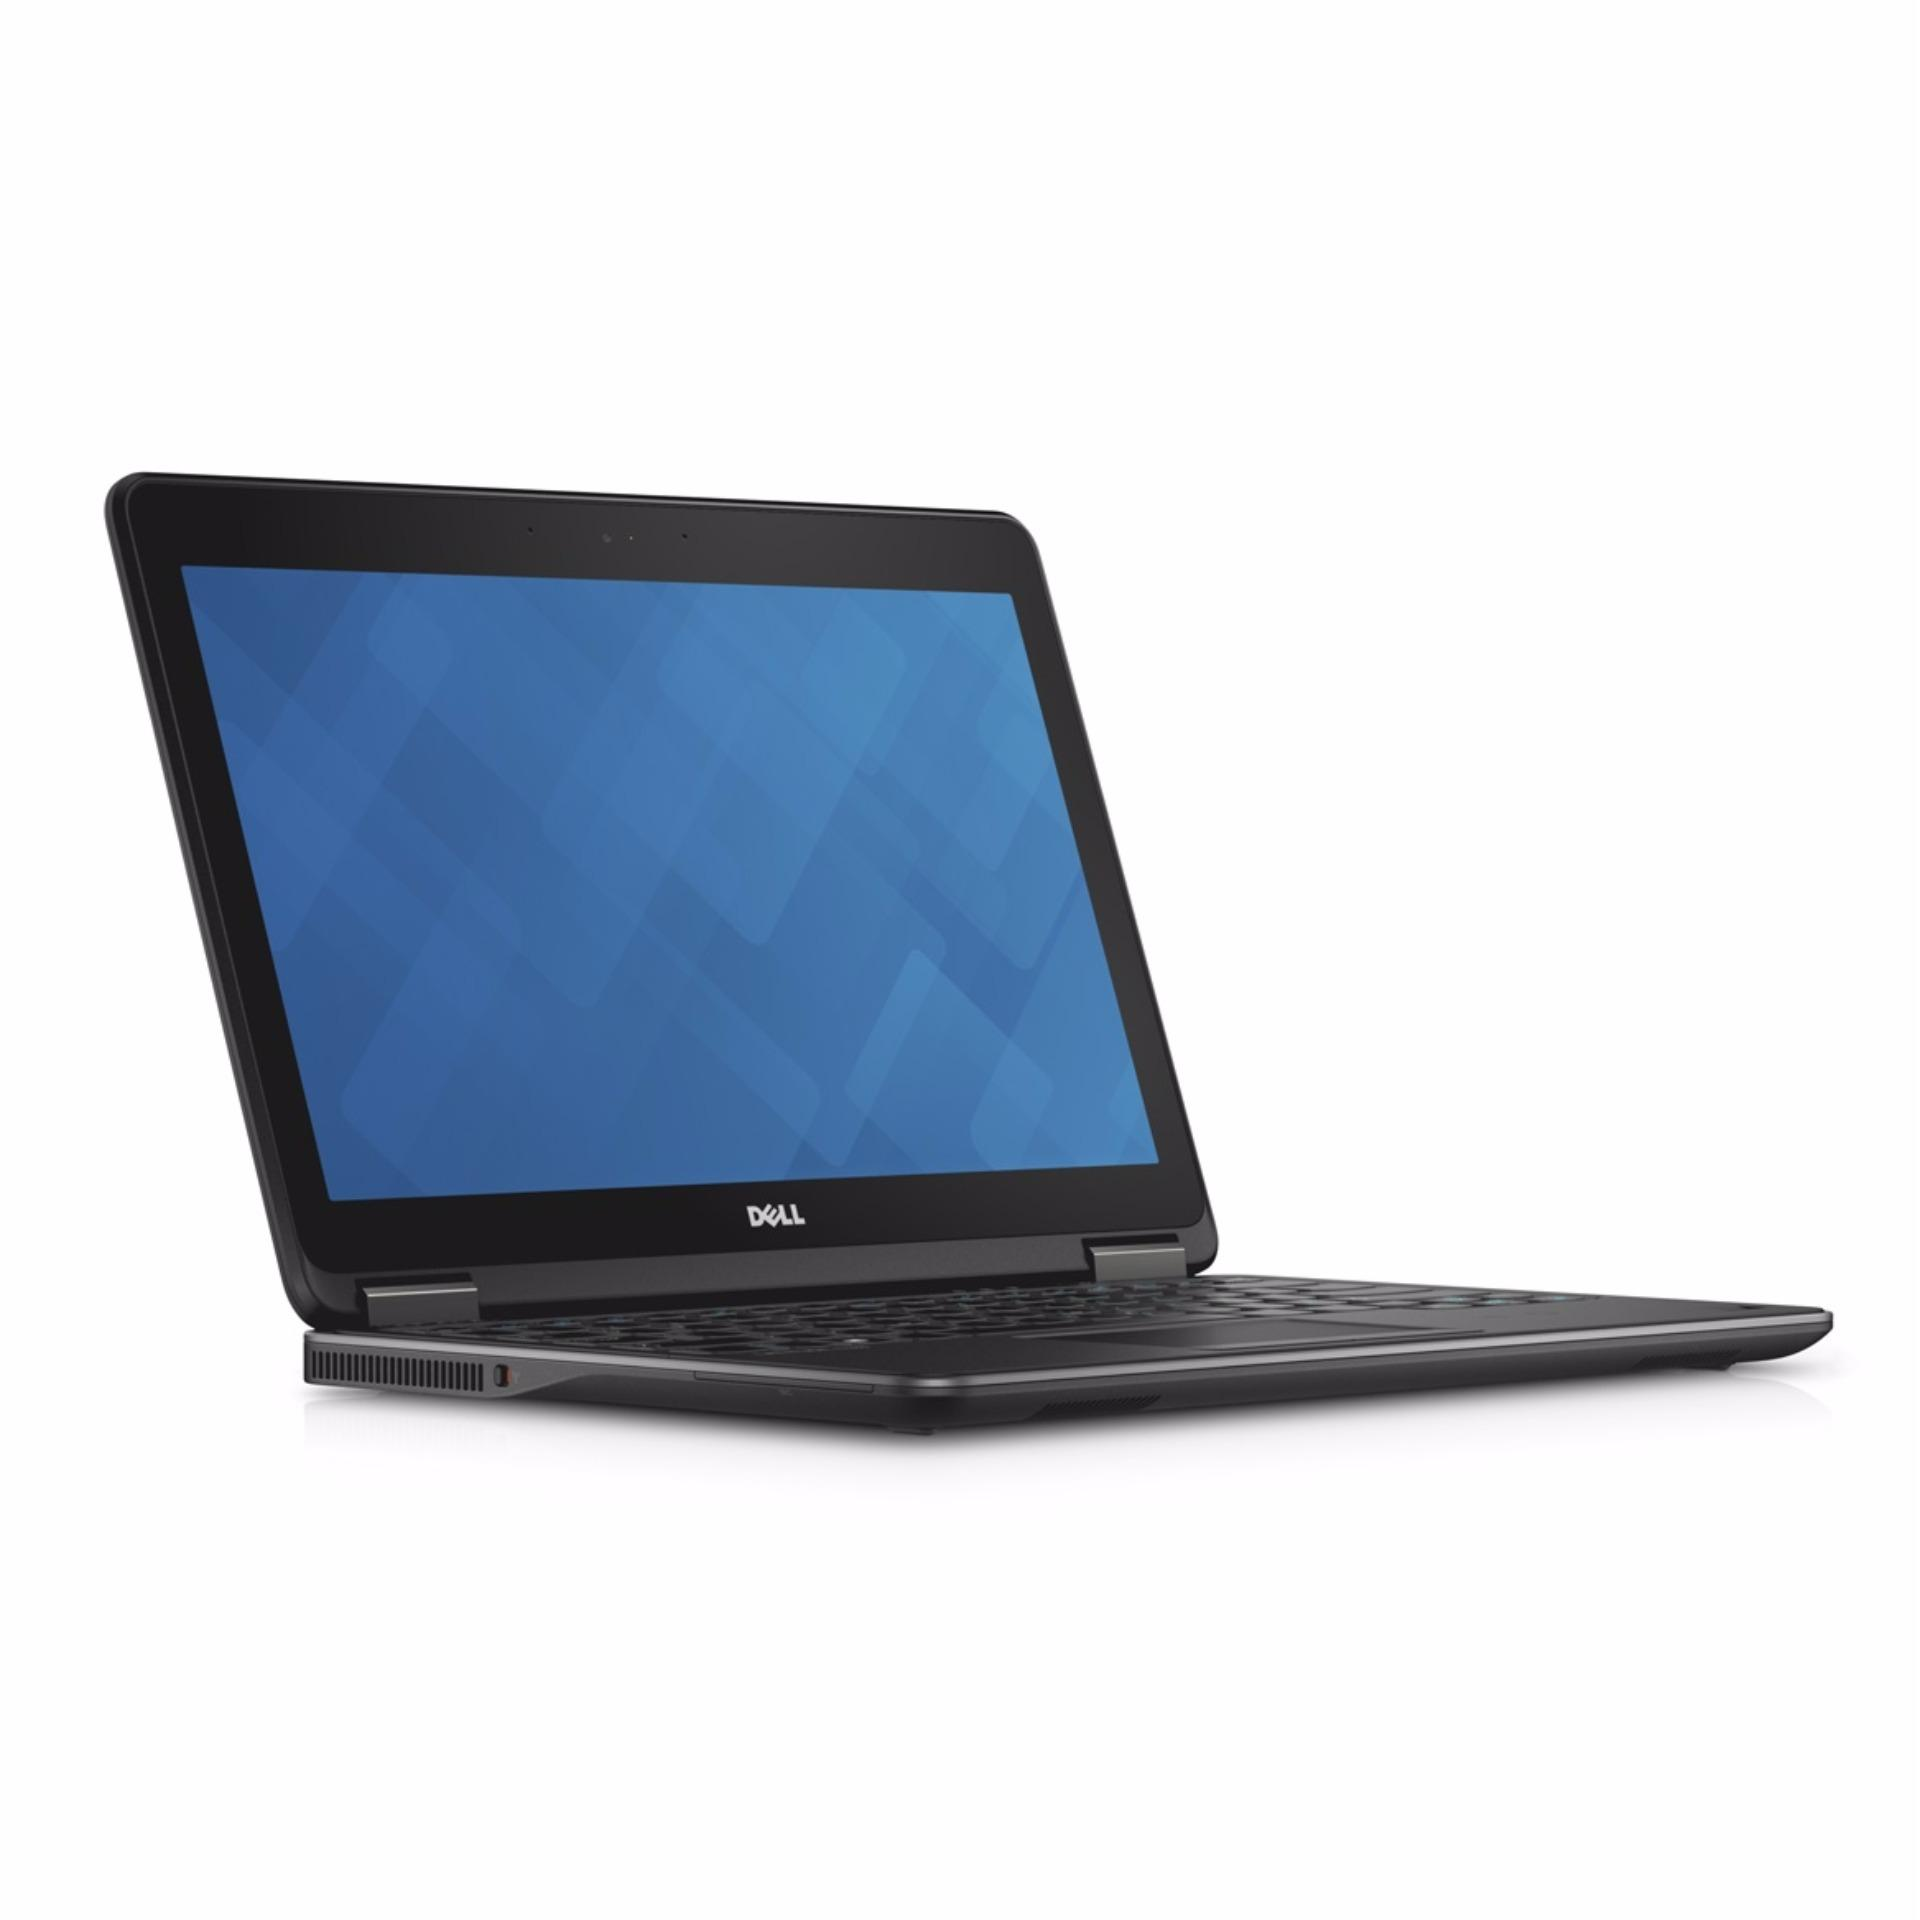 Refurbished Dell E7240 Laptop / 12.5 Inch / Intel i7 / 8GB RAM / 256GB SSD / Window 8 / One Month Warranty